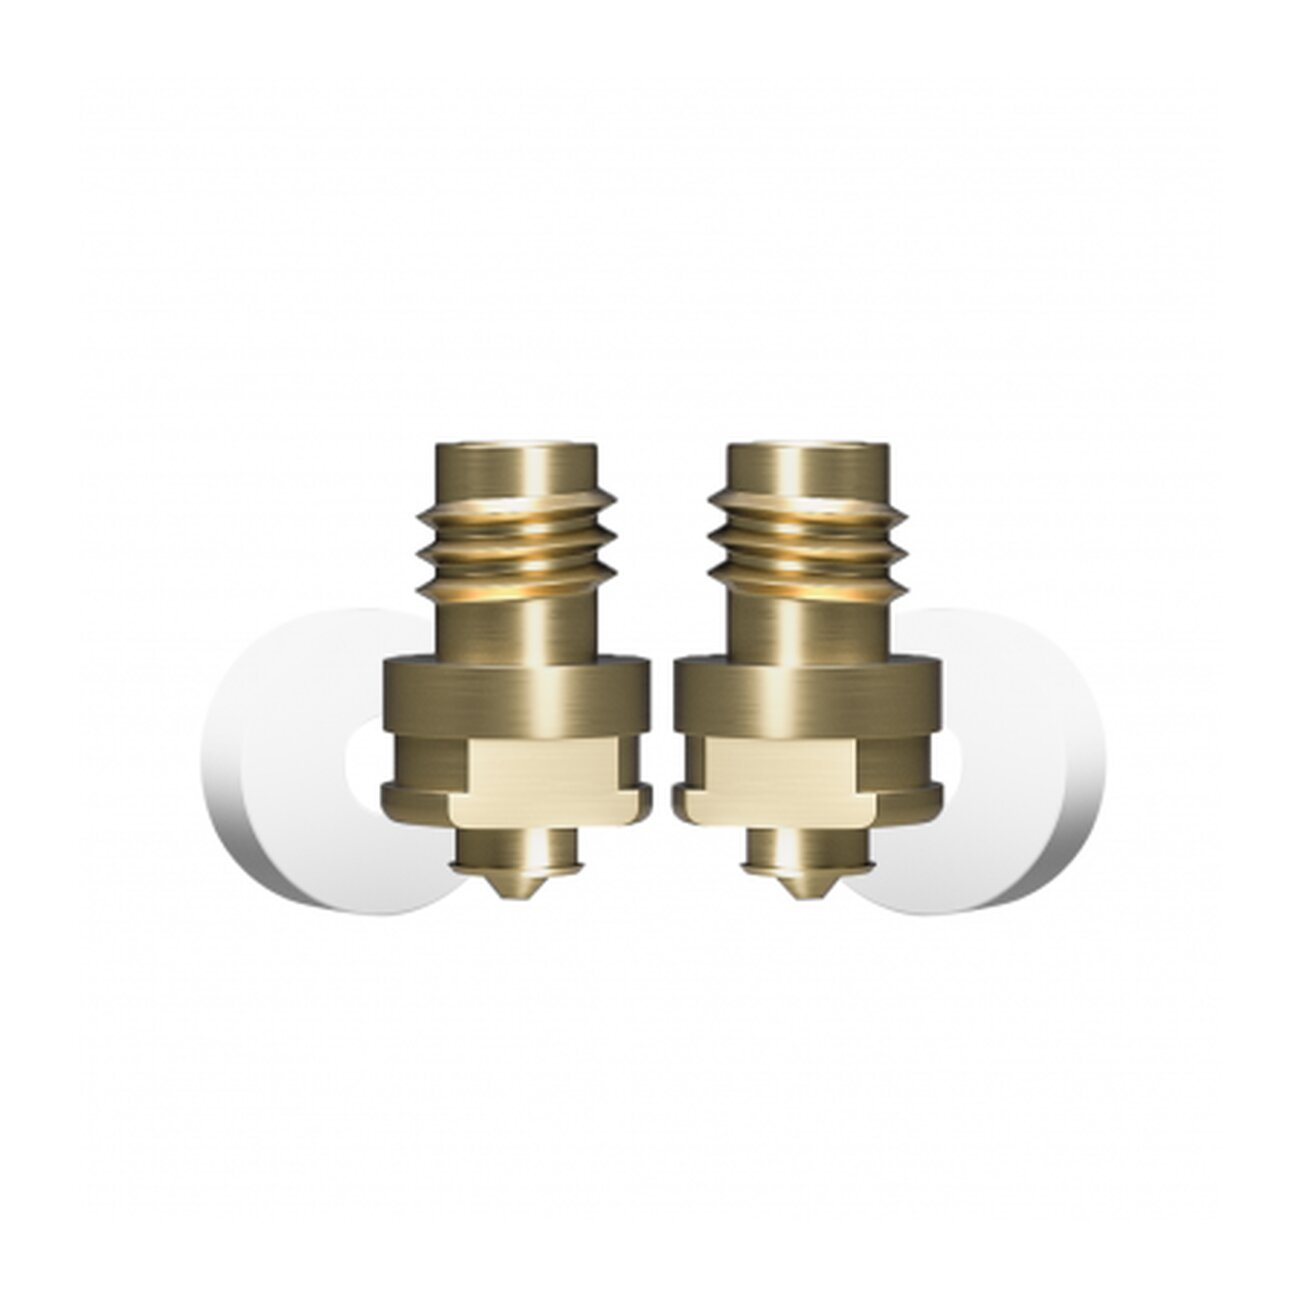 Zortrax Nozzle Set 0.3 & 0.6mm  M200 Plus, M300 Plus